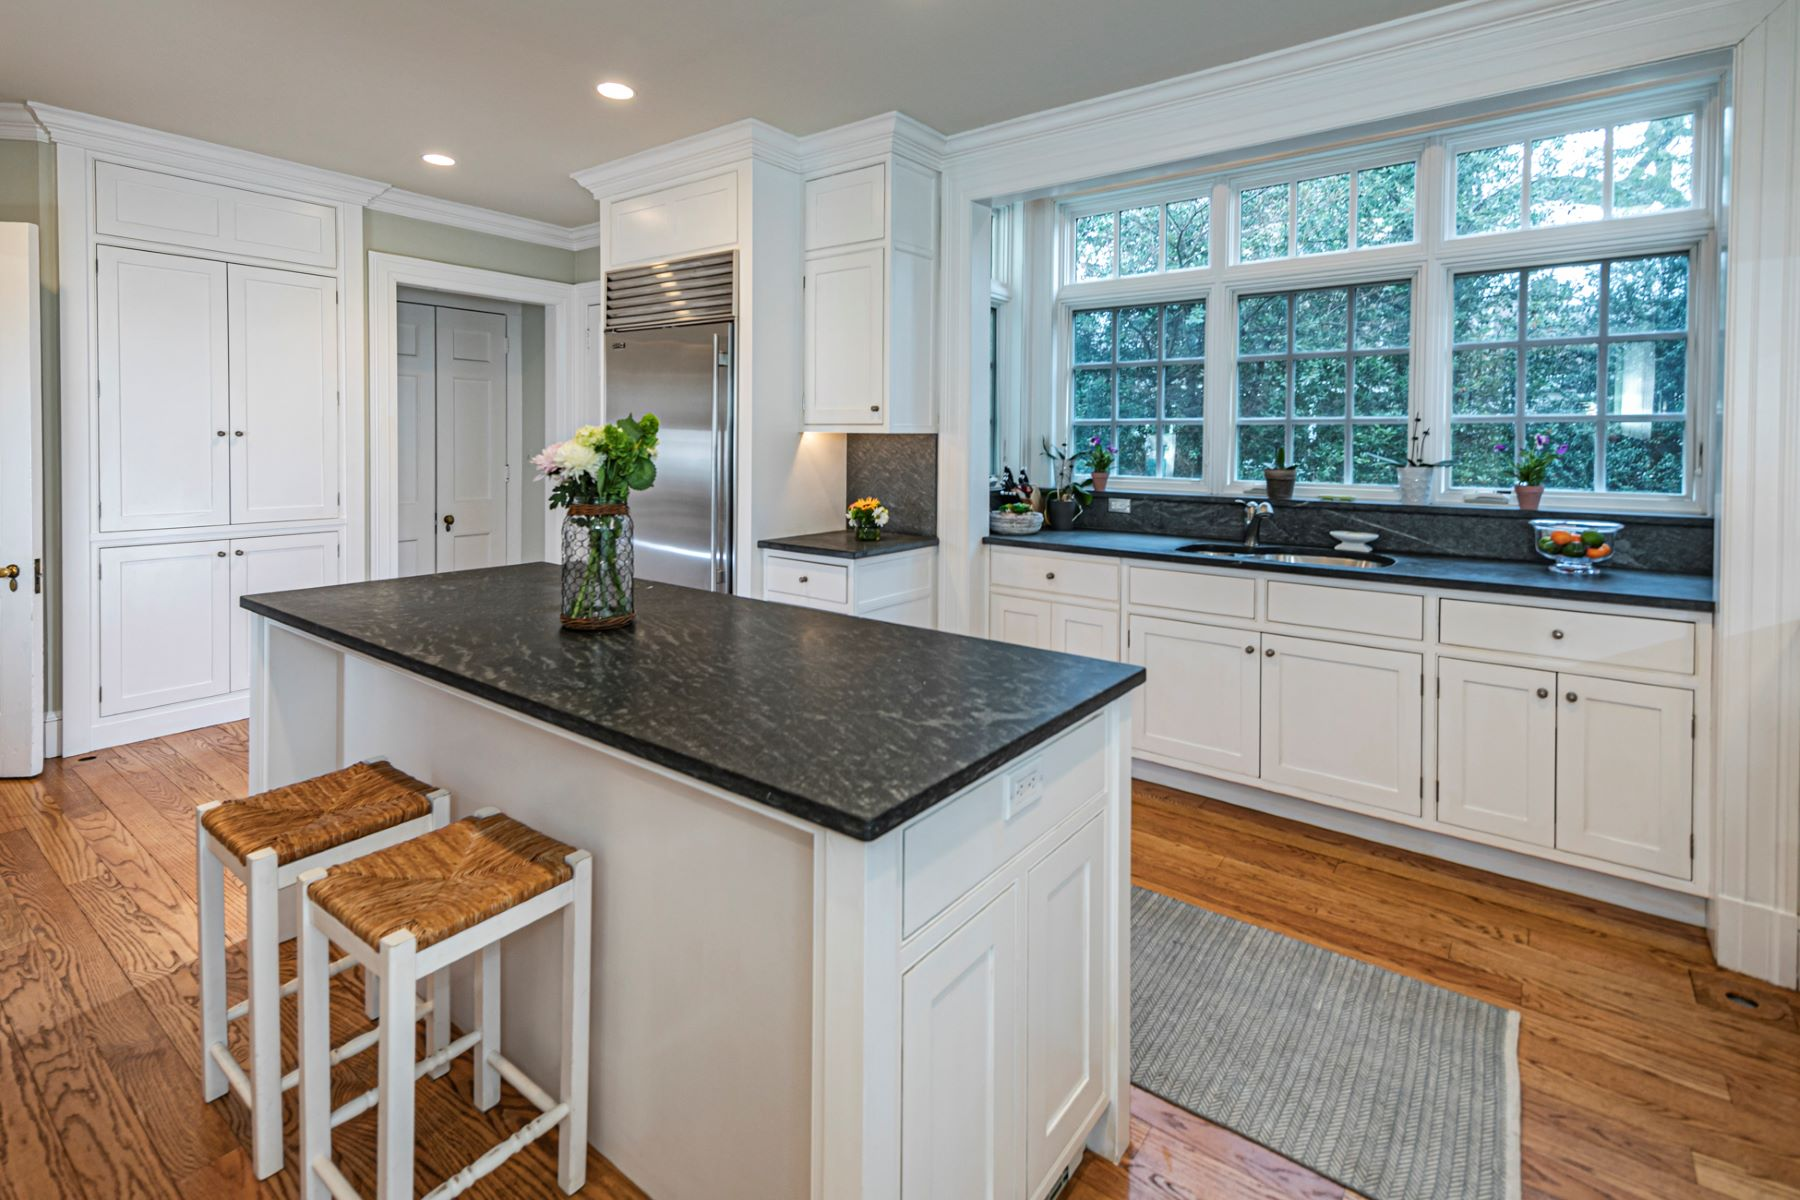 Additional photo for property listing at A Western Section Stunner 130 Library Place, Princeton, Nueva Jersey 08540 Estados Unidos